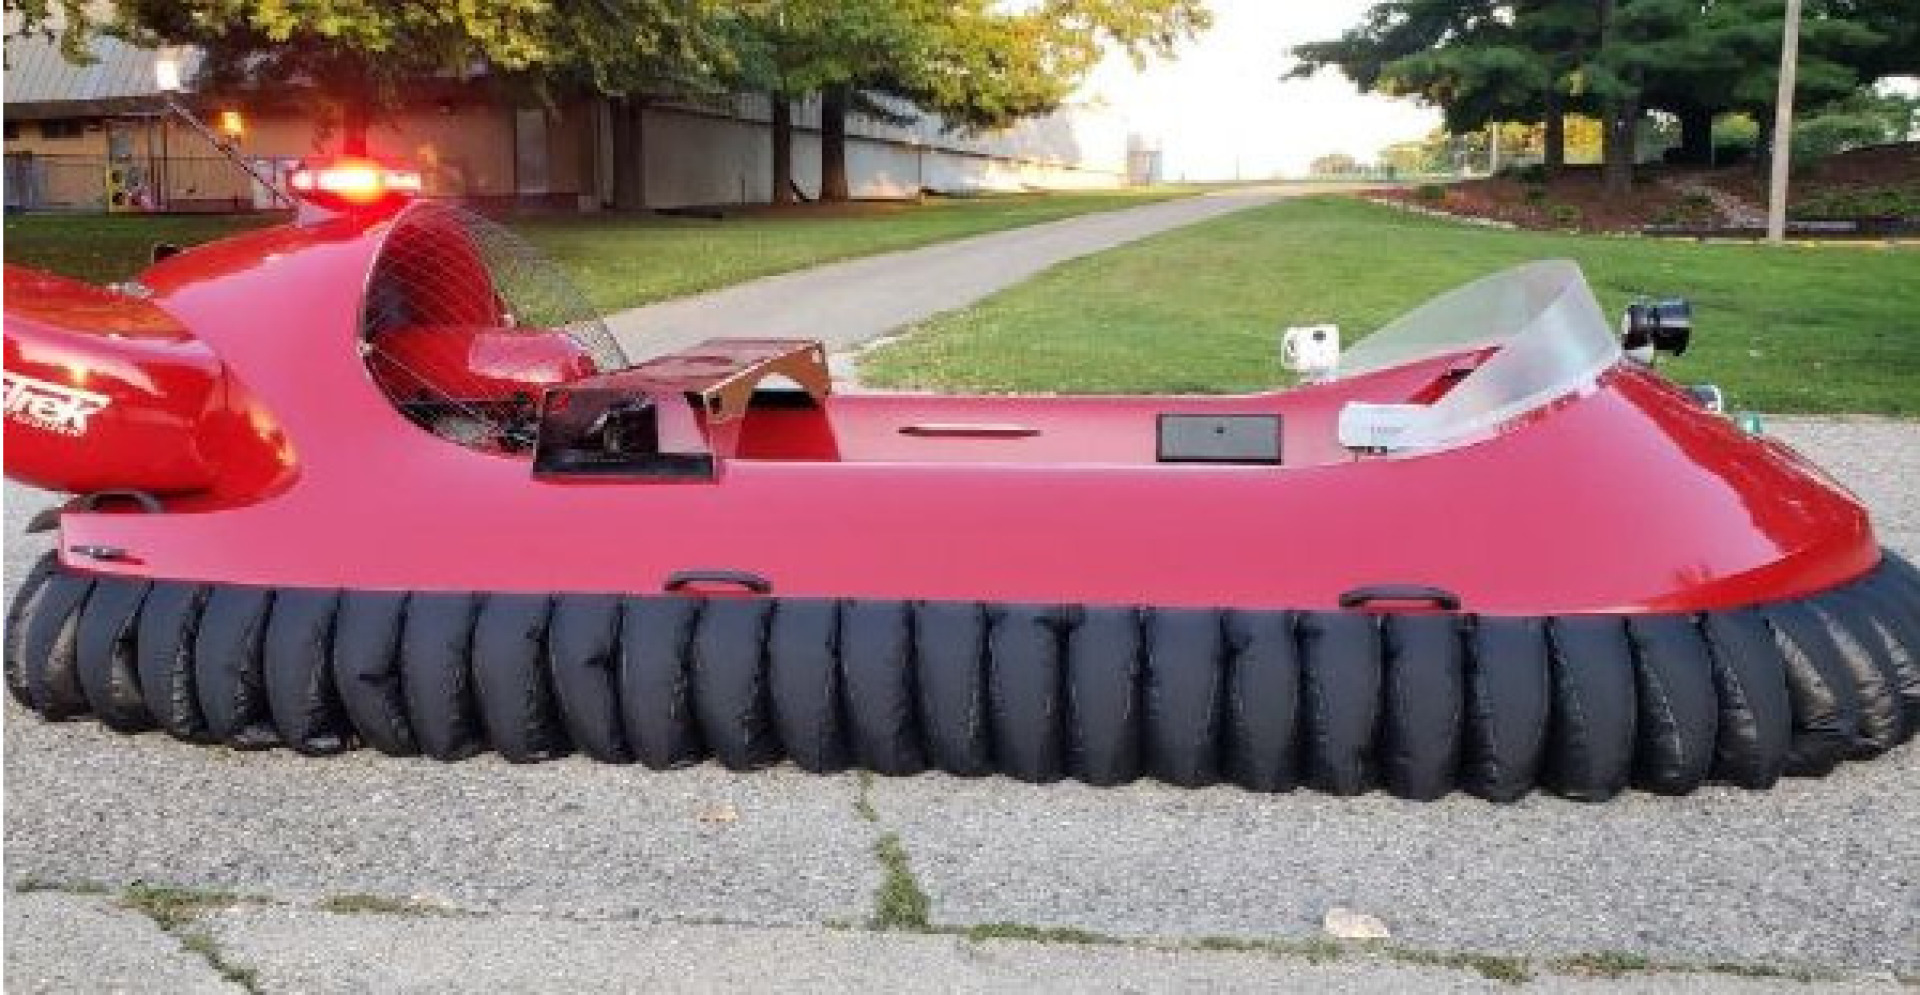 Neoteric Hovercraft-Rescue Hovercraft 5852 2021 -New Orleans-Louisiana-United States-1555120 | Thumbnail